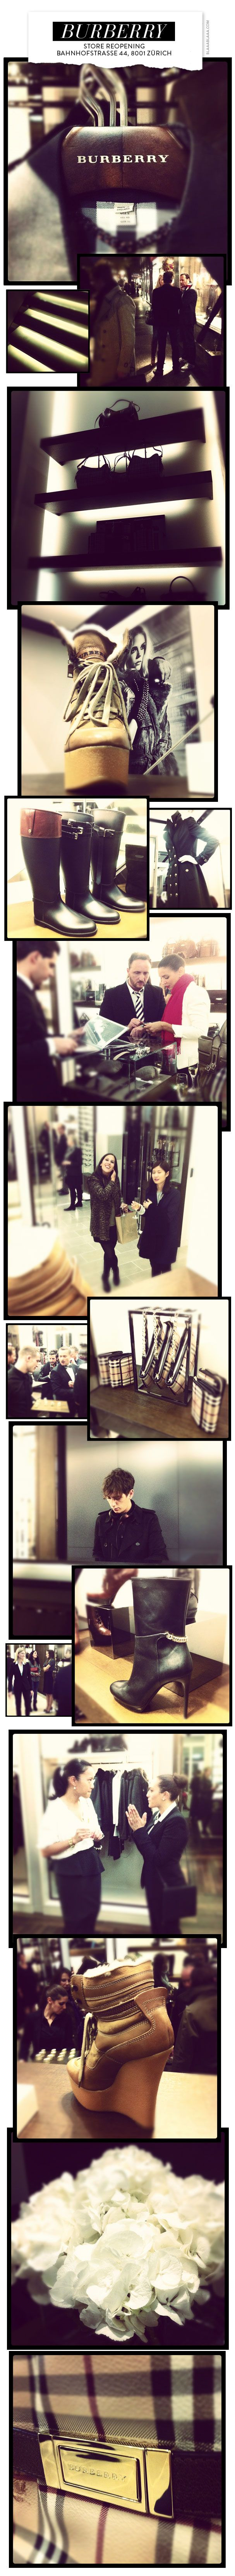 Burberry Store Reopening in Zurich